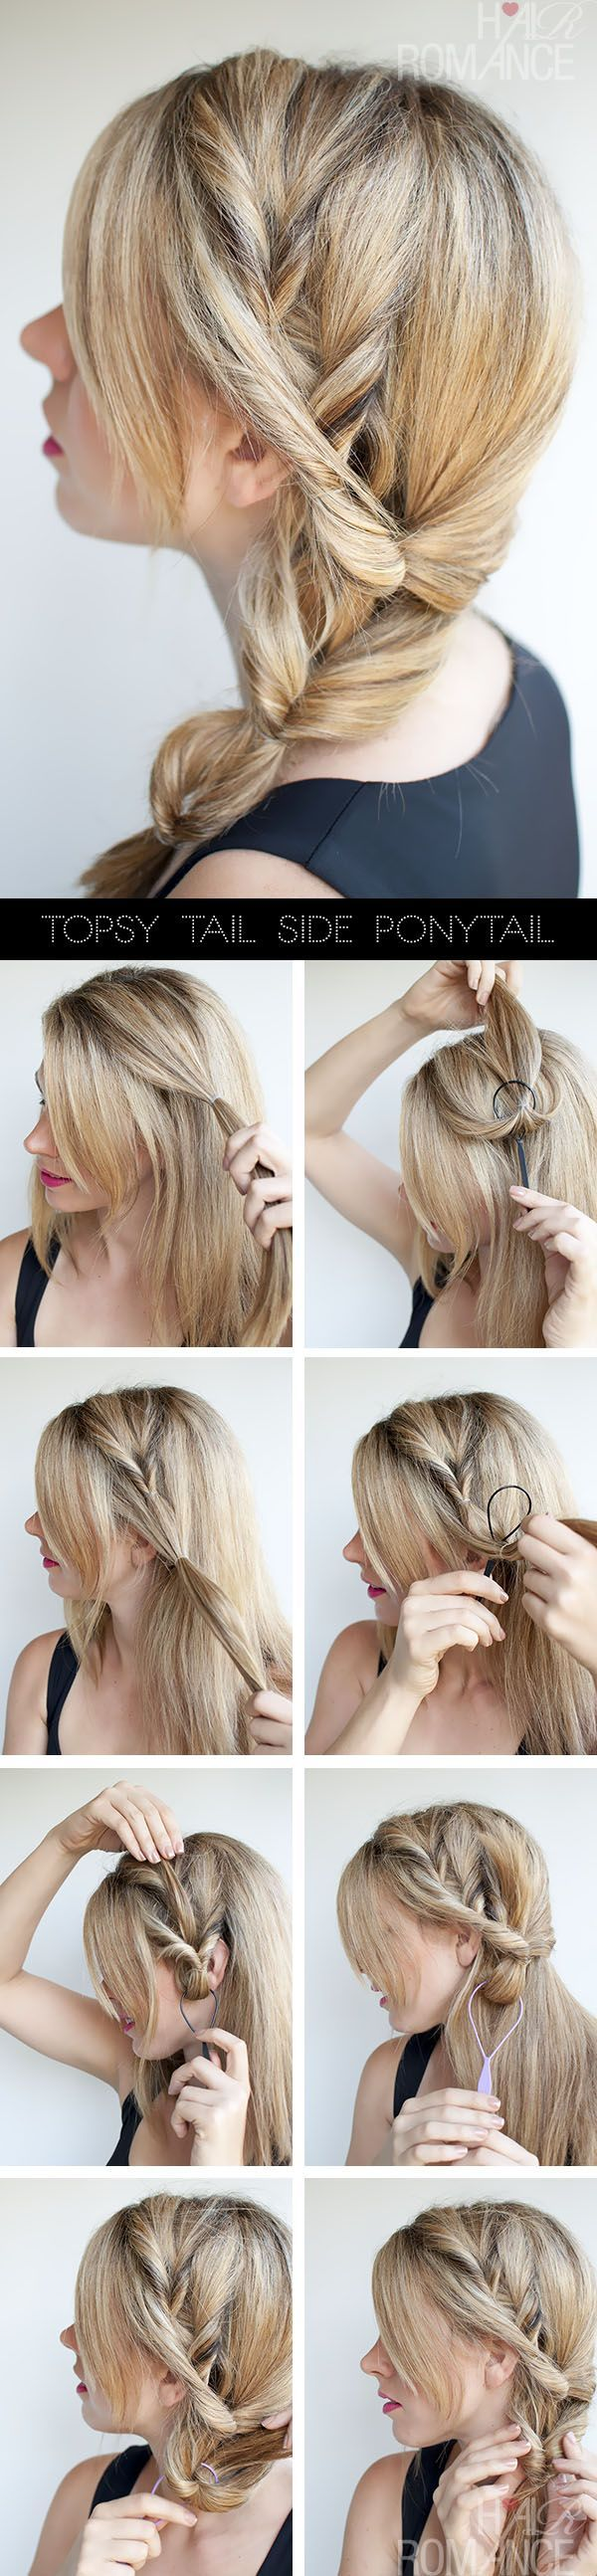 Hair | How To' Topsy Tail Ponytail tutorial - the no-braid side braid